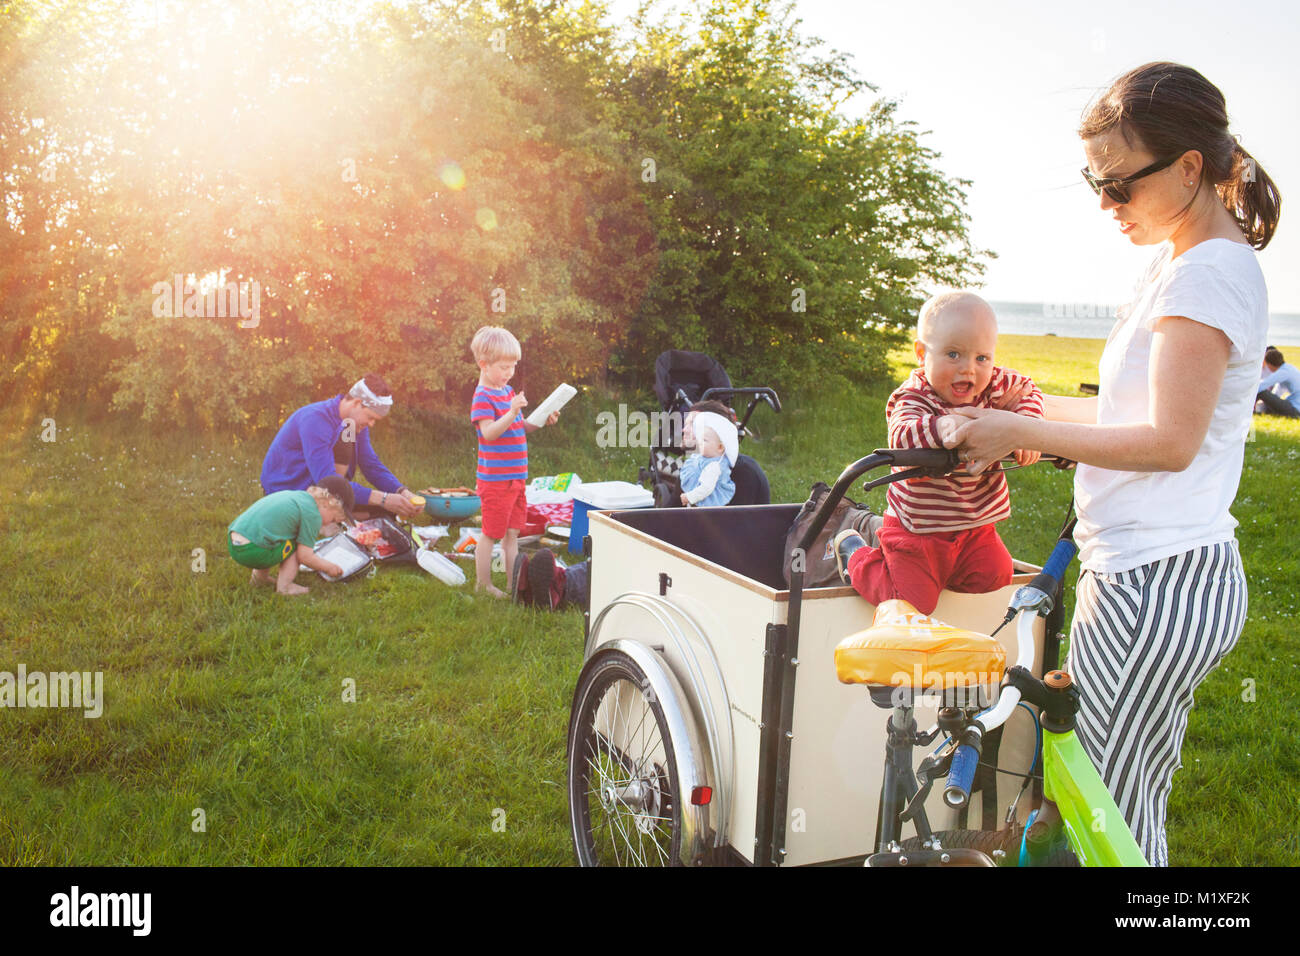 Mother playing with son on bicycle - Stock Image